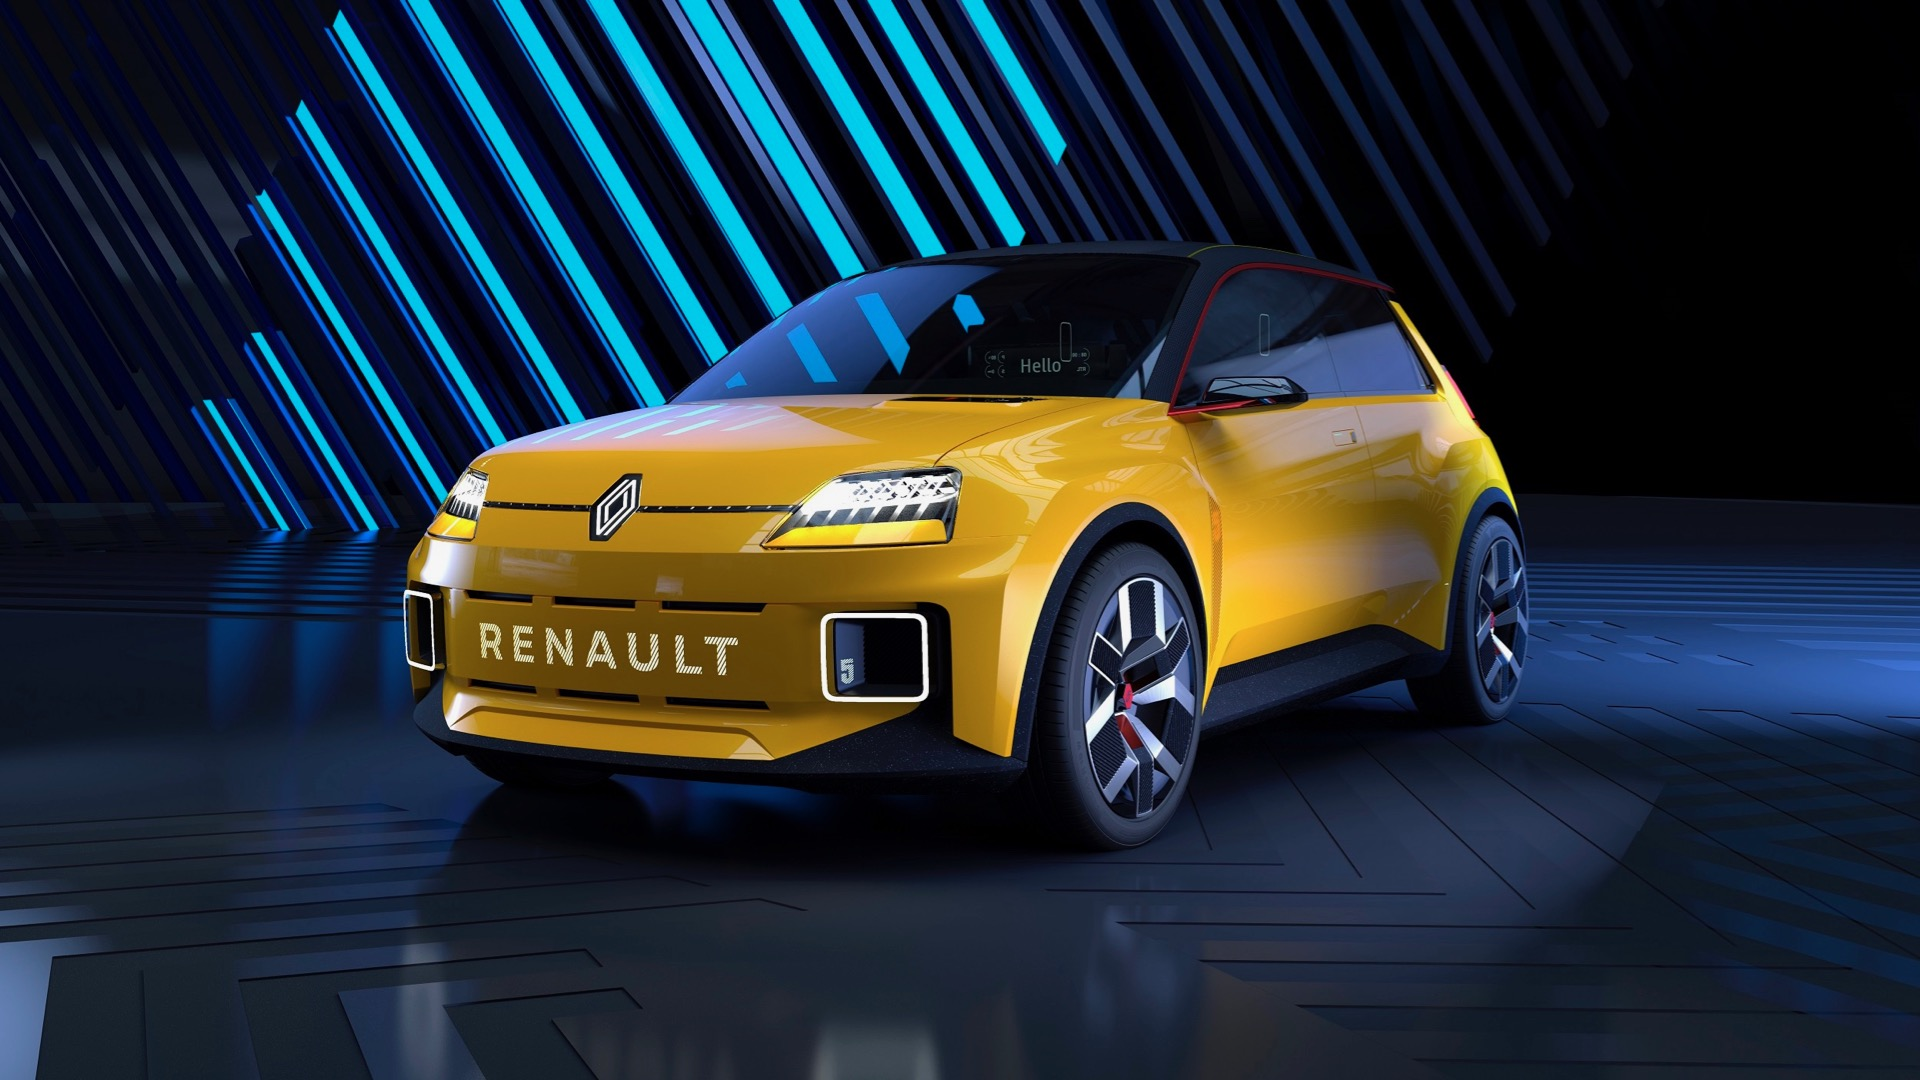 Renault 5 Prototype is a retro-styled electric car inspired by the R5